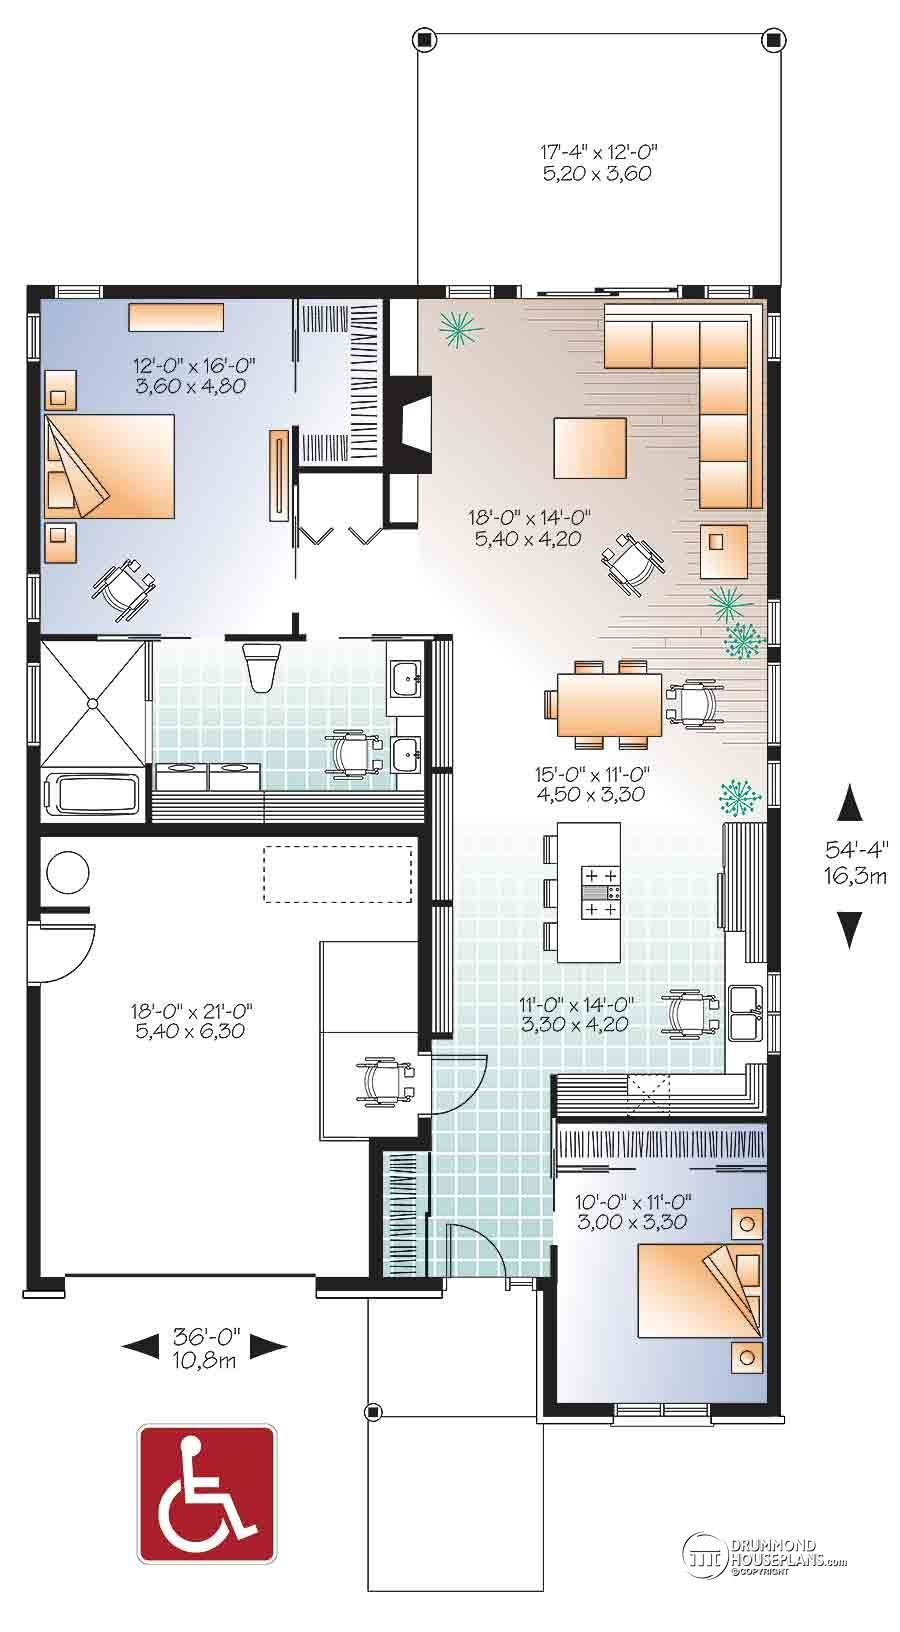 Plan Image Free House Plans Wheelchair House Plans Accessible House Plans